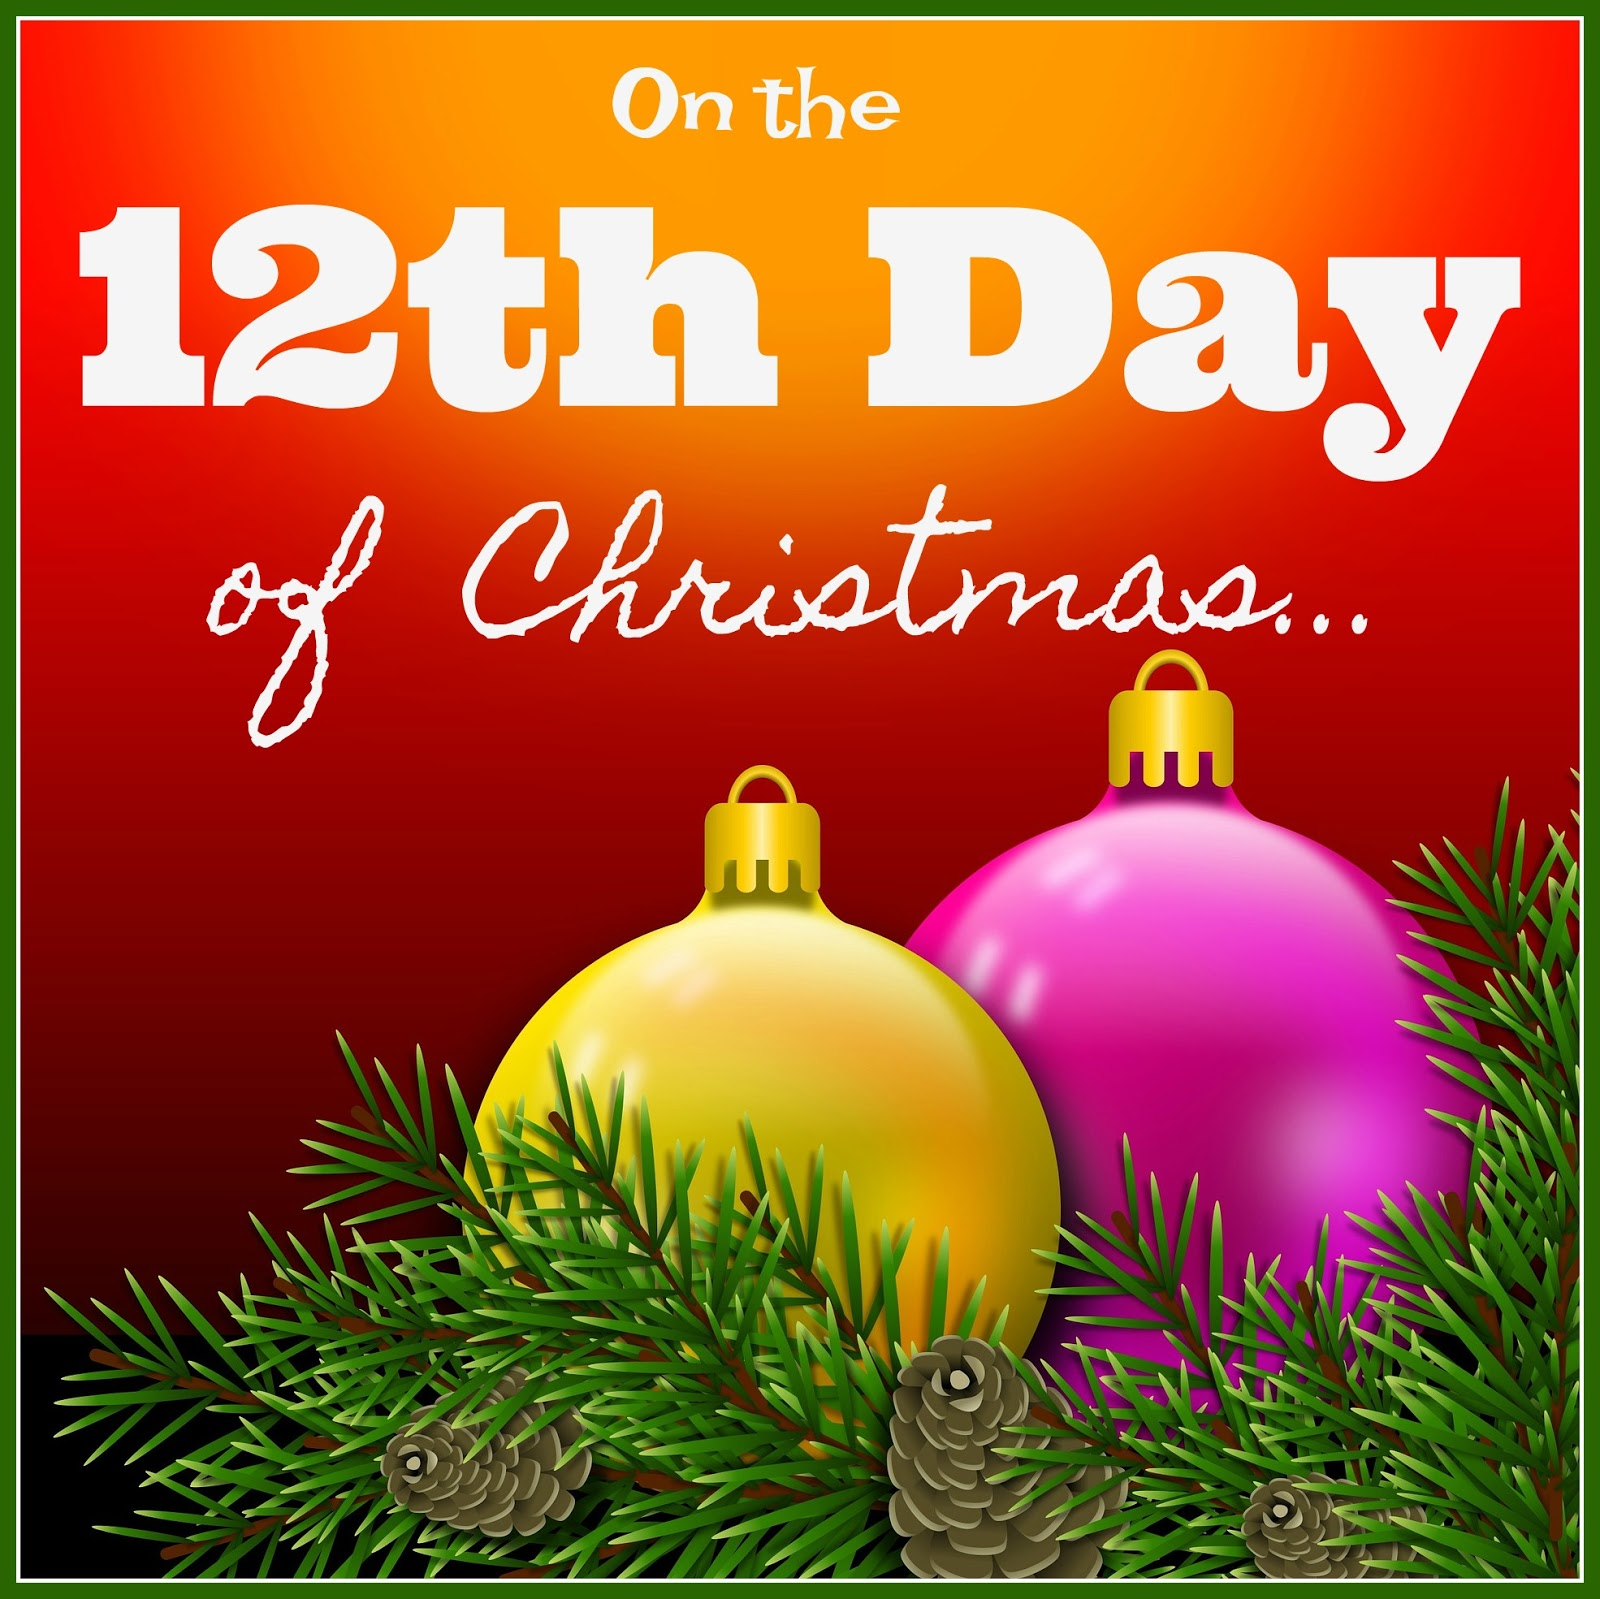 On The 12th Day Of Christmas.An Inside To My Heart On The 12th Day Of Christmas